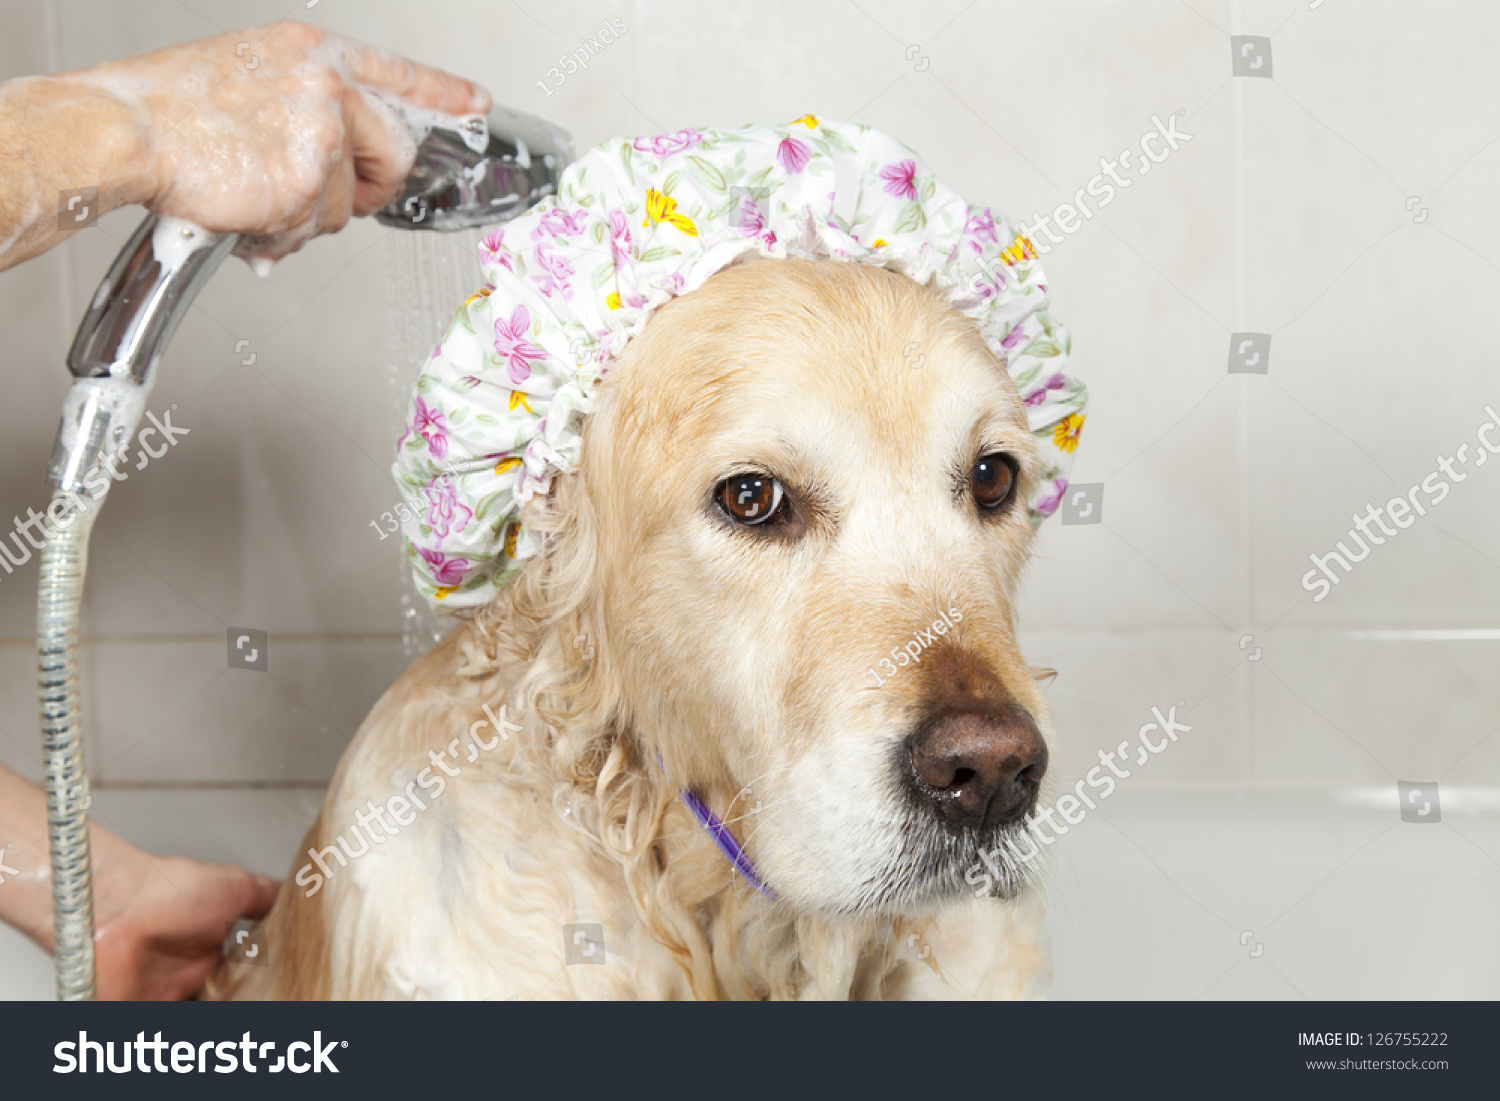 Attirant A Dog Taking A Shower With Soap And Water